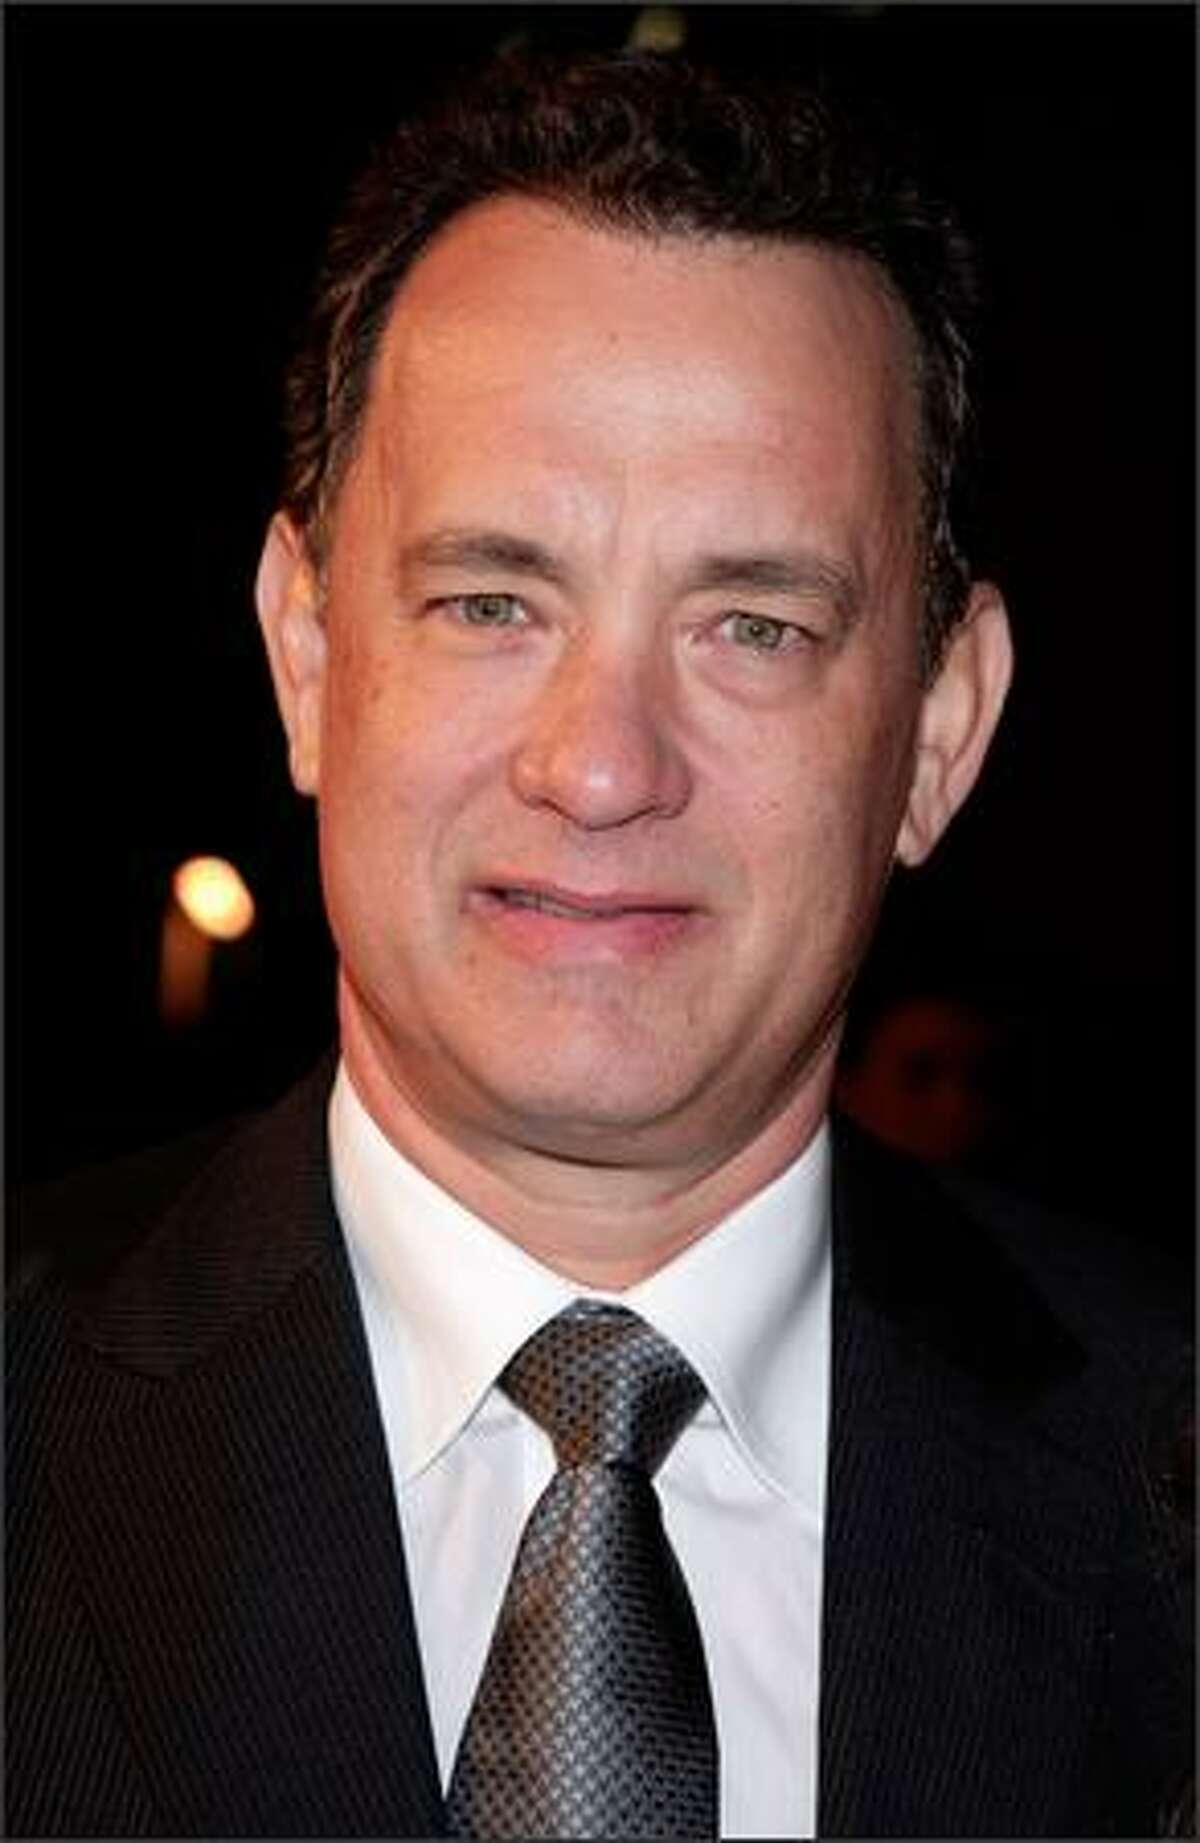 Actor Tom Hanks arrives at the Universal Pictures' premiere of